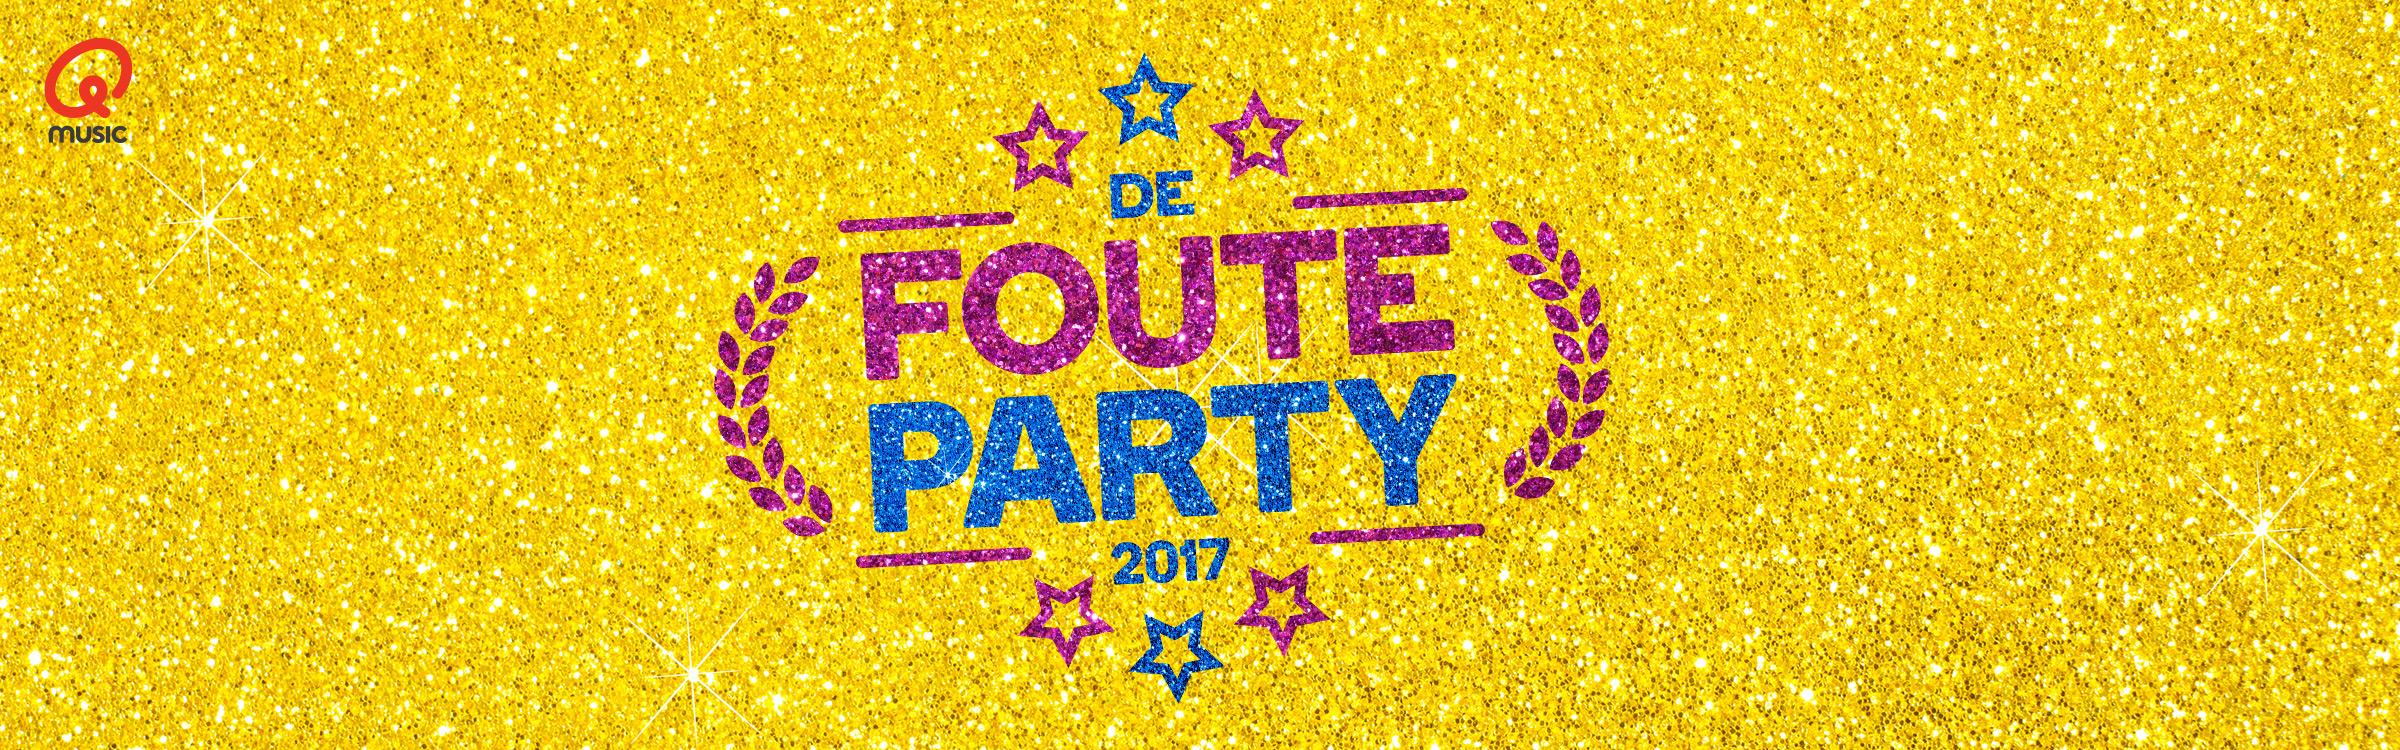 Qmusic actionheader fouteparty2017 algemeen